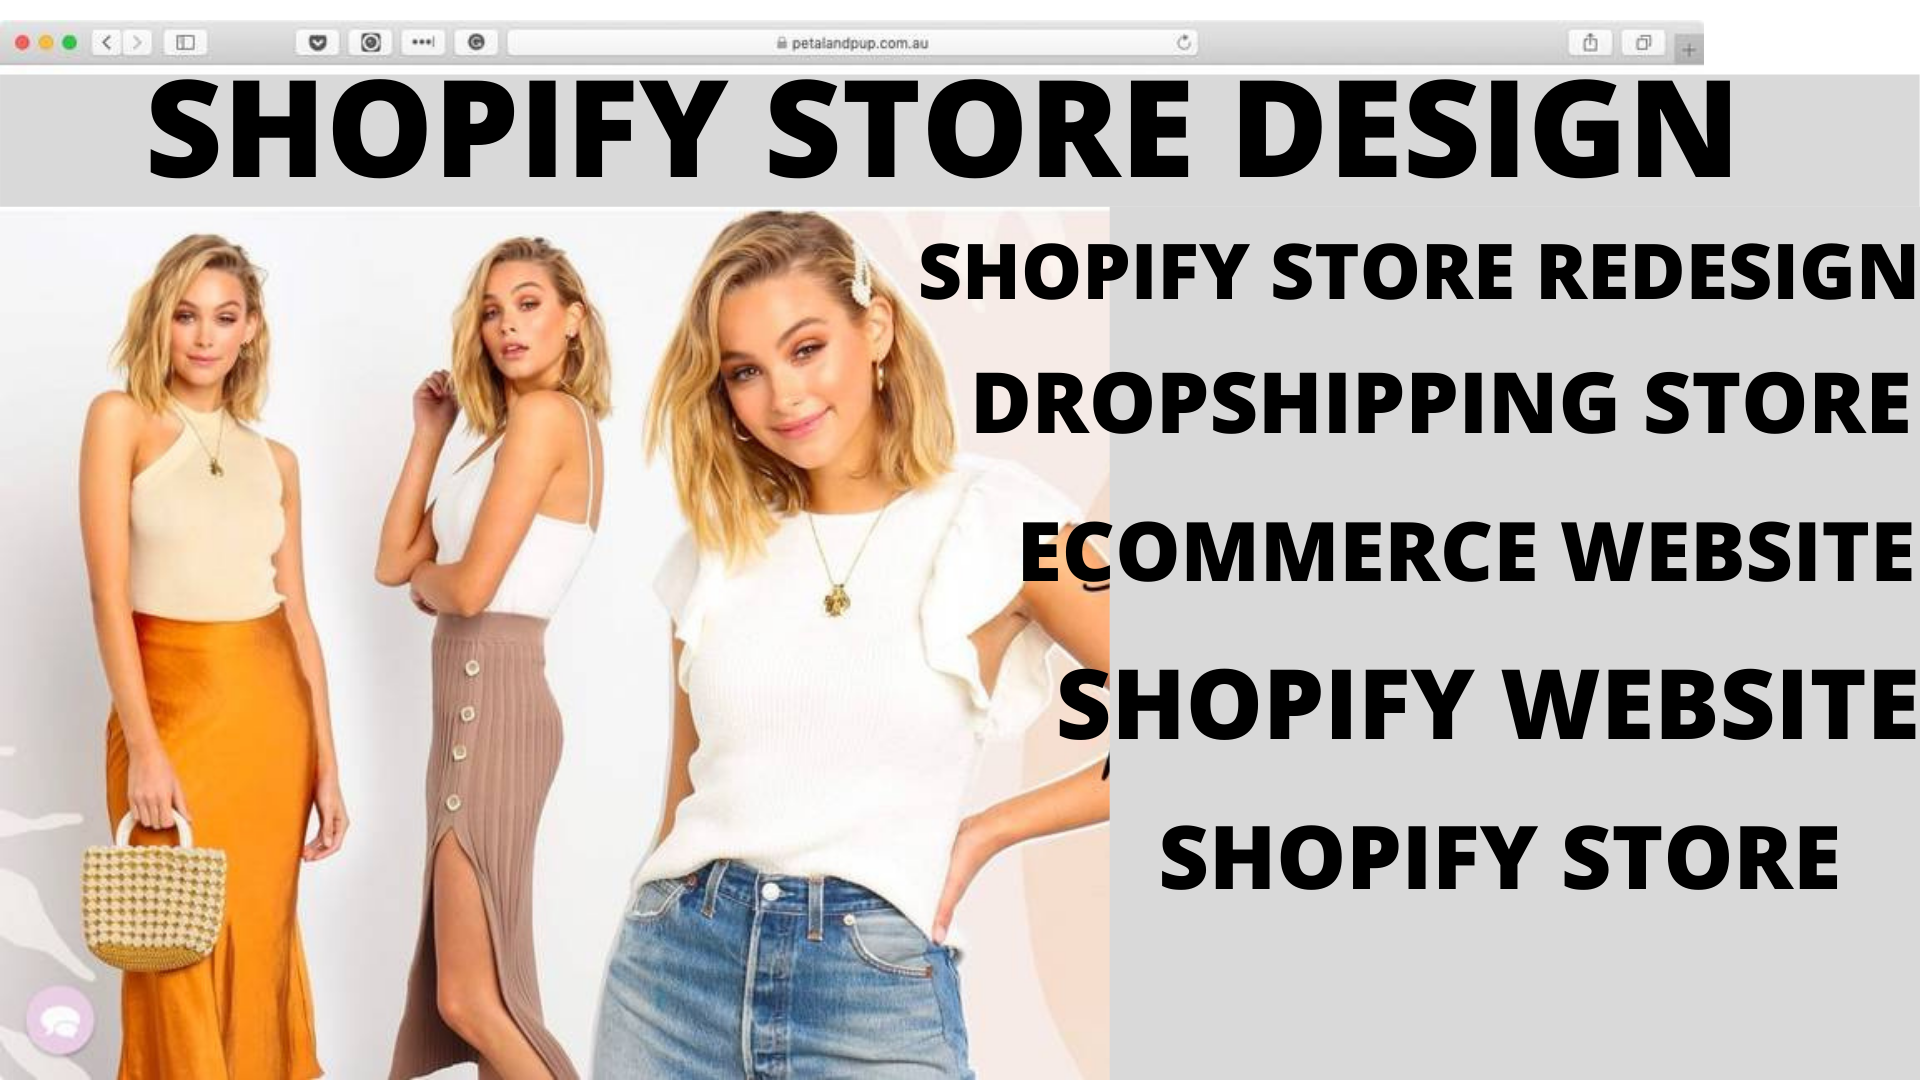 I will do shopify store design ecommerce dropshipping website we, FiverrBox